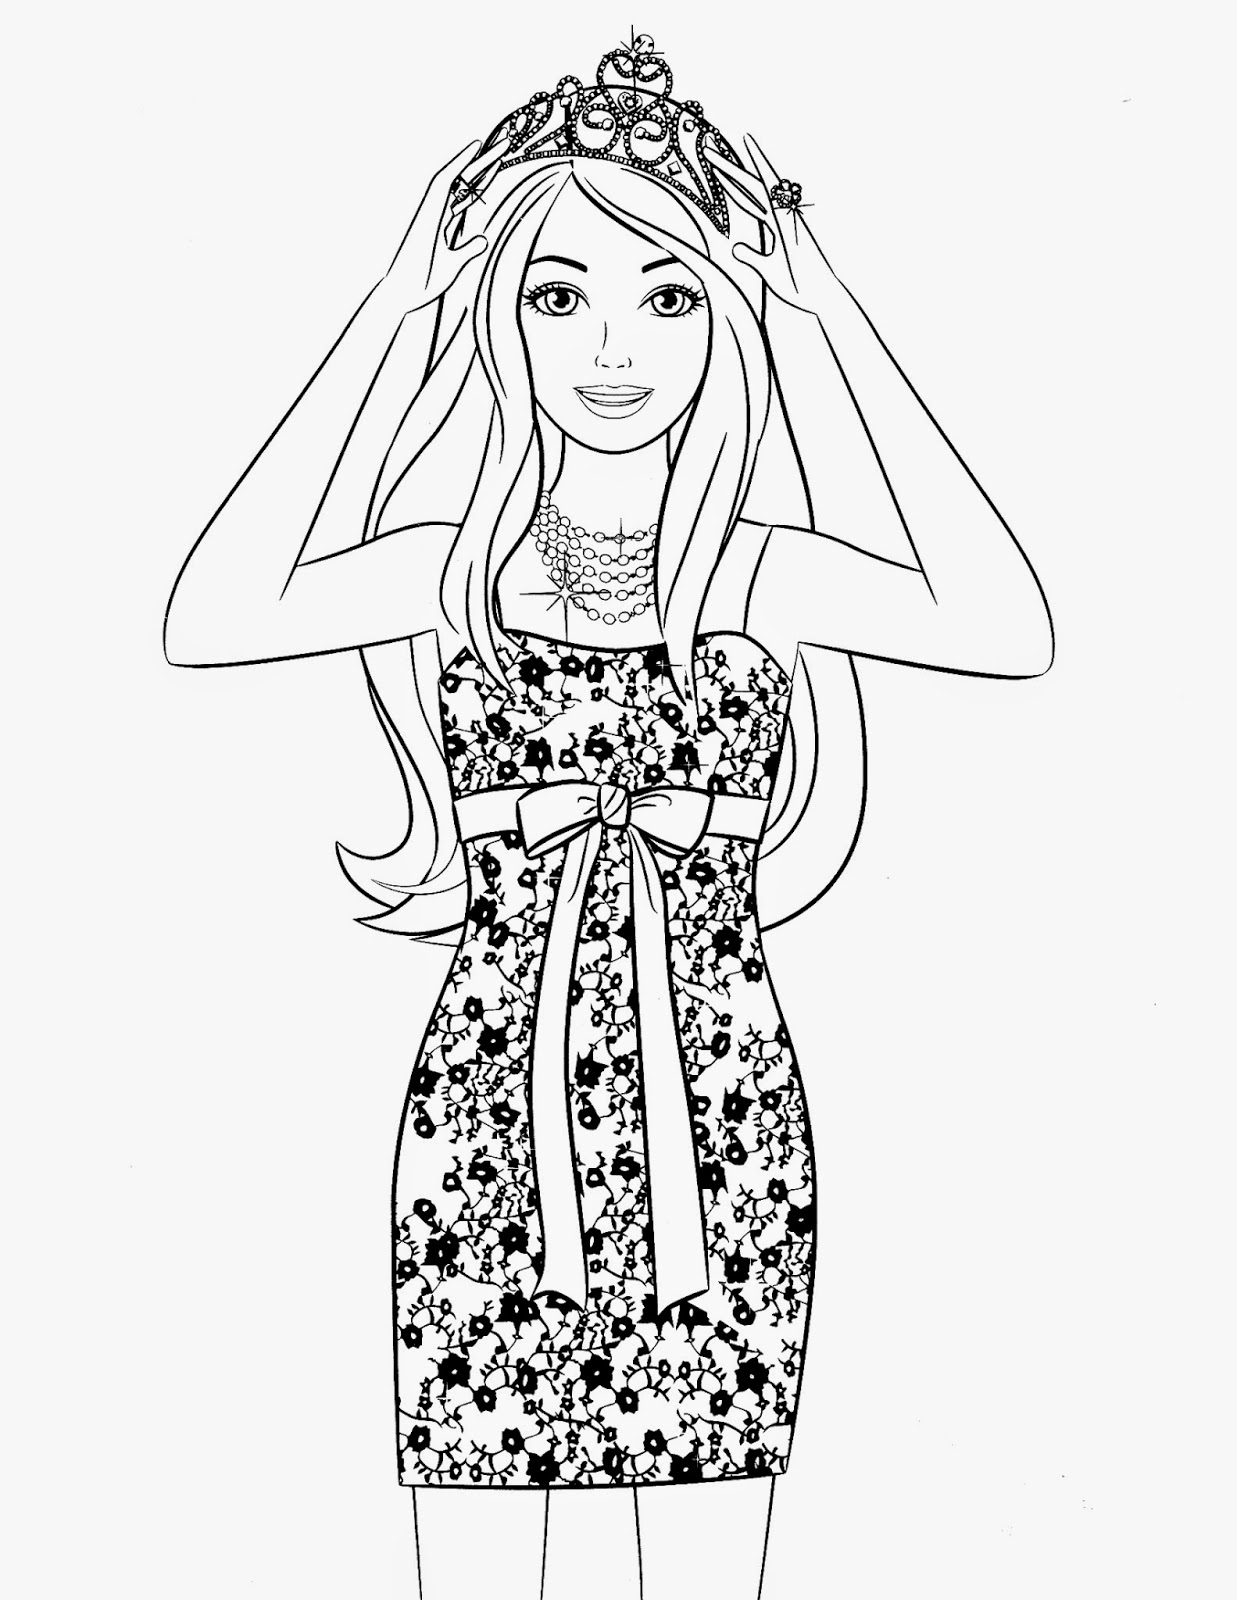 Coloring pages barbie free printable coloring pages for Fashion barbie coloring pages